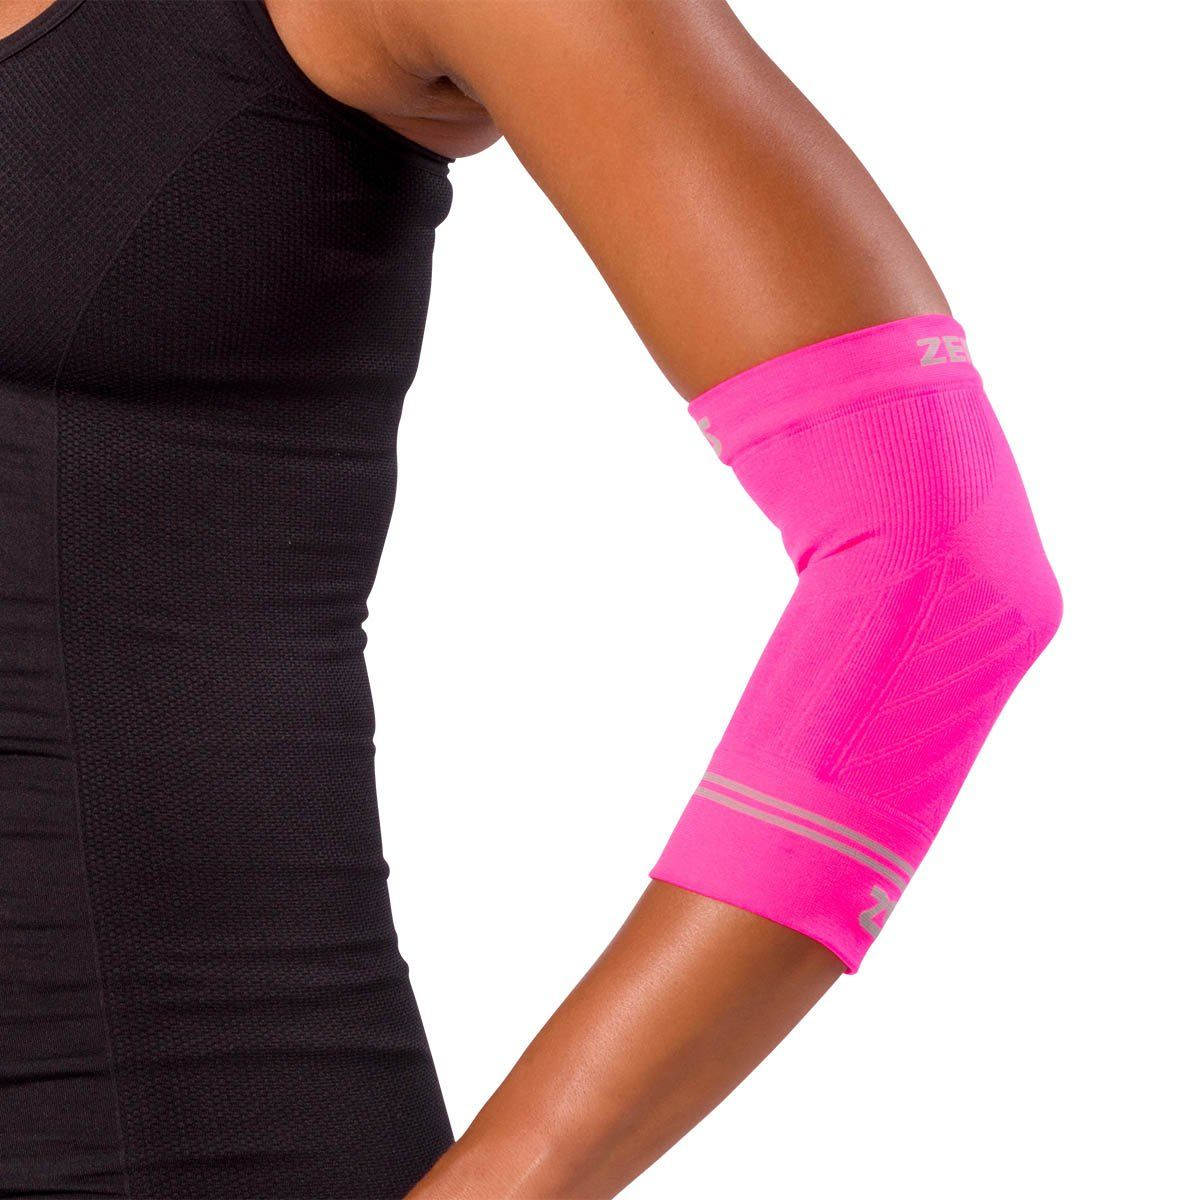 Zensah Compression Tennis Elbow Sleeve for Elbow